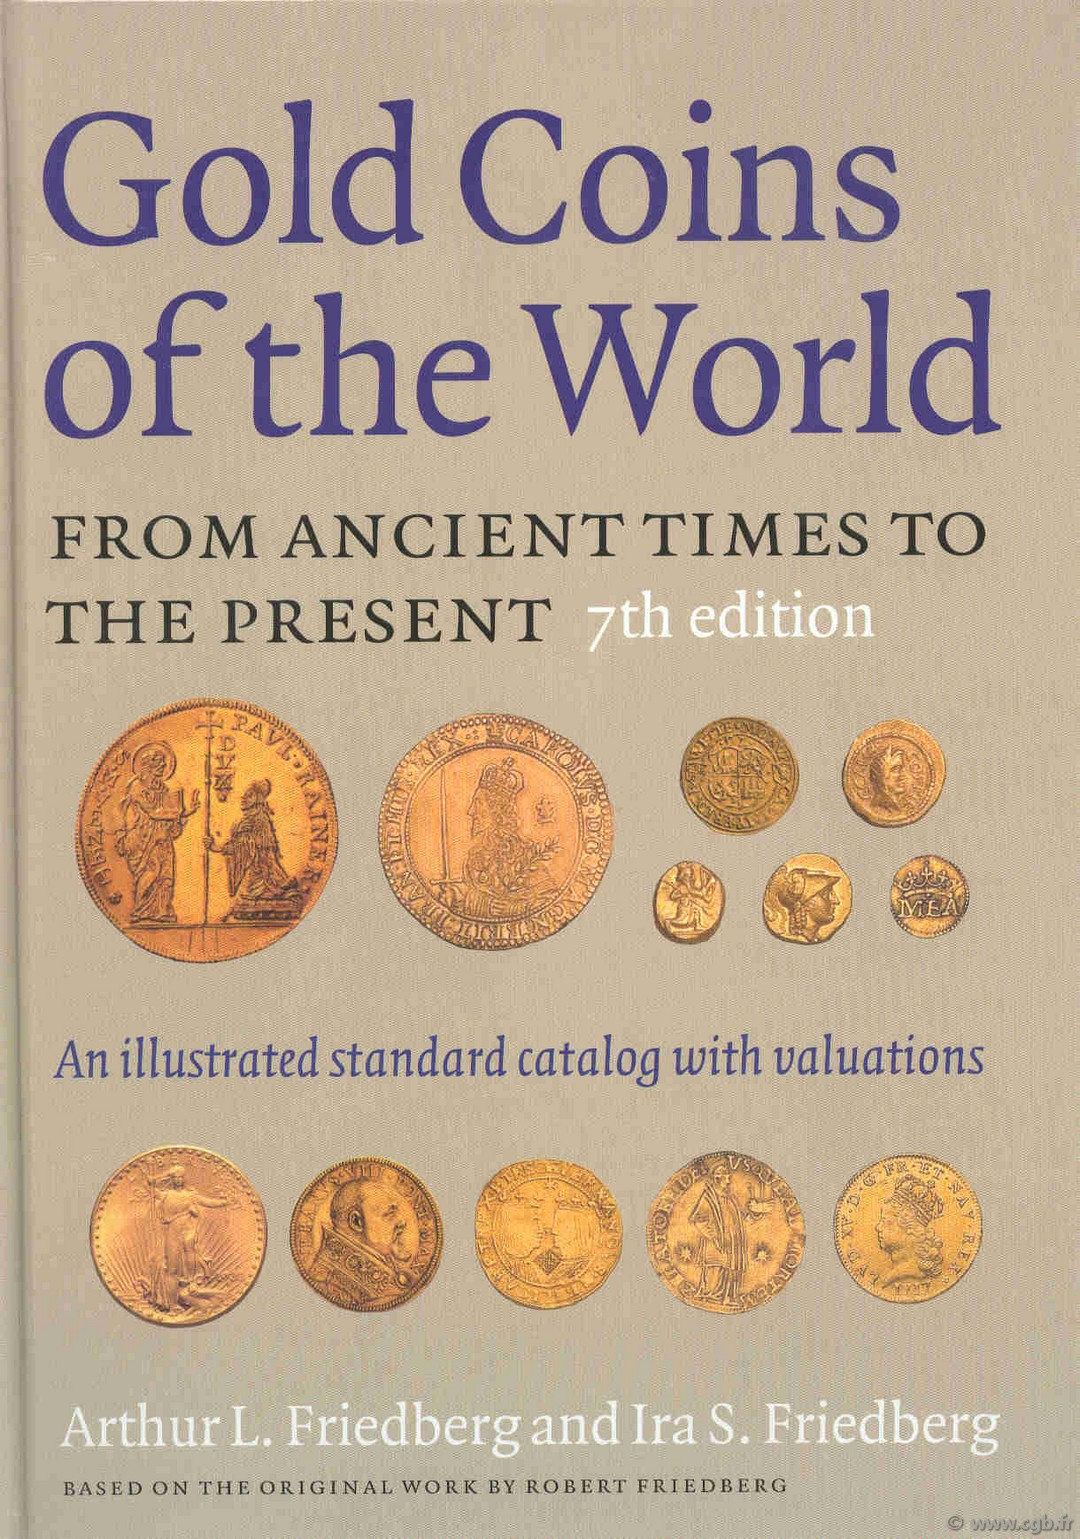 Gold Coins of the World from Ancient Times to the Present, 7th edition  FRIEDBERG Arthur L., FRIEDBERG Ira S.